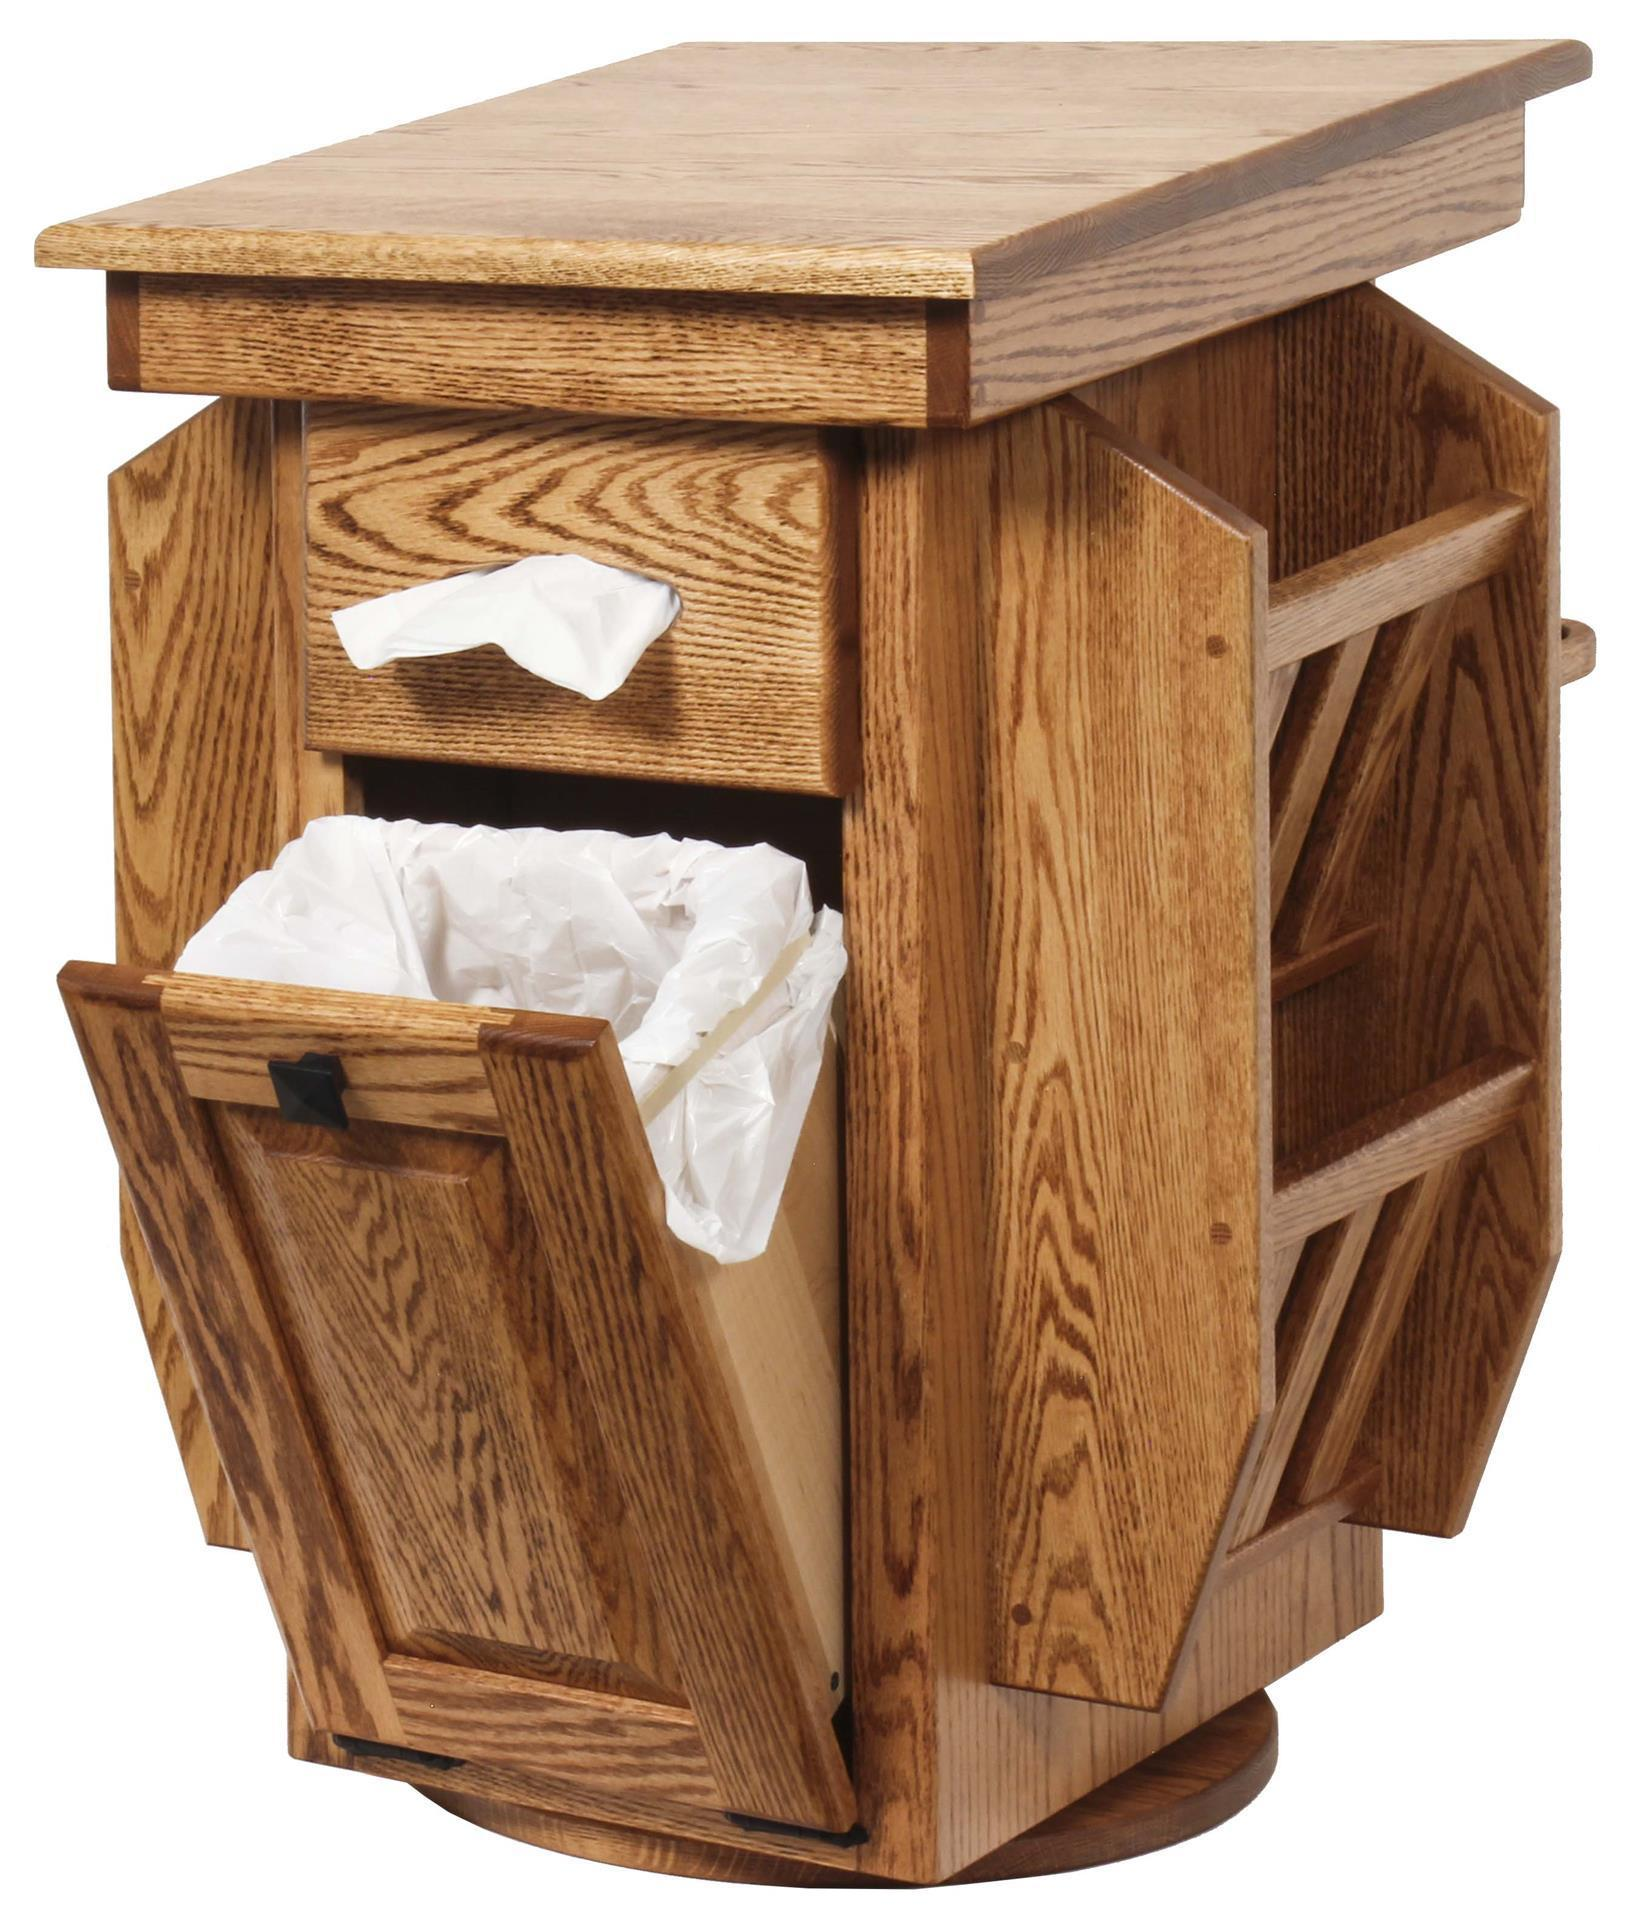 Solid Wood Magazine Stand With Storage